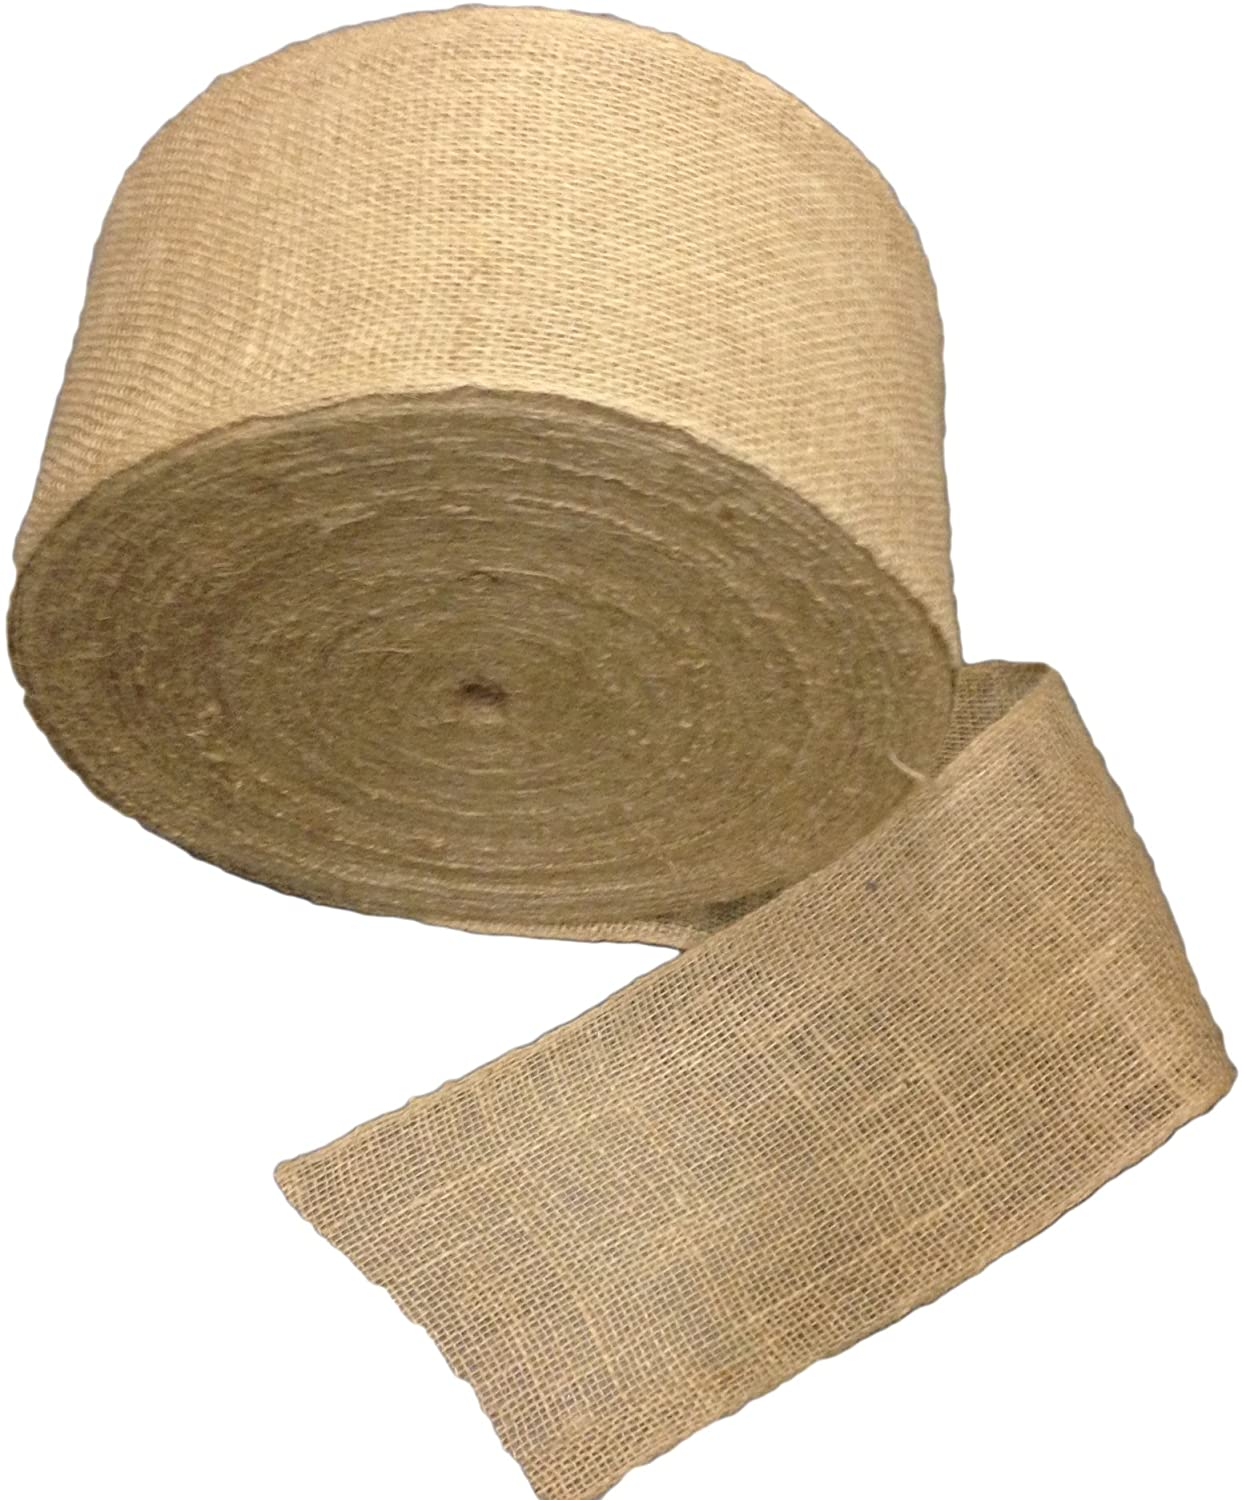 6 Inch Burlap Roll with Sewn Edges - 100 Yards